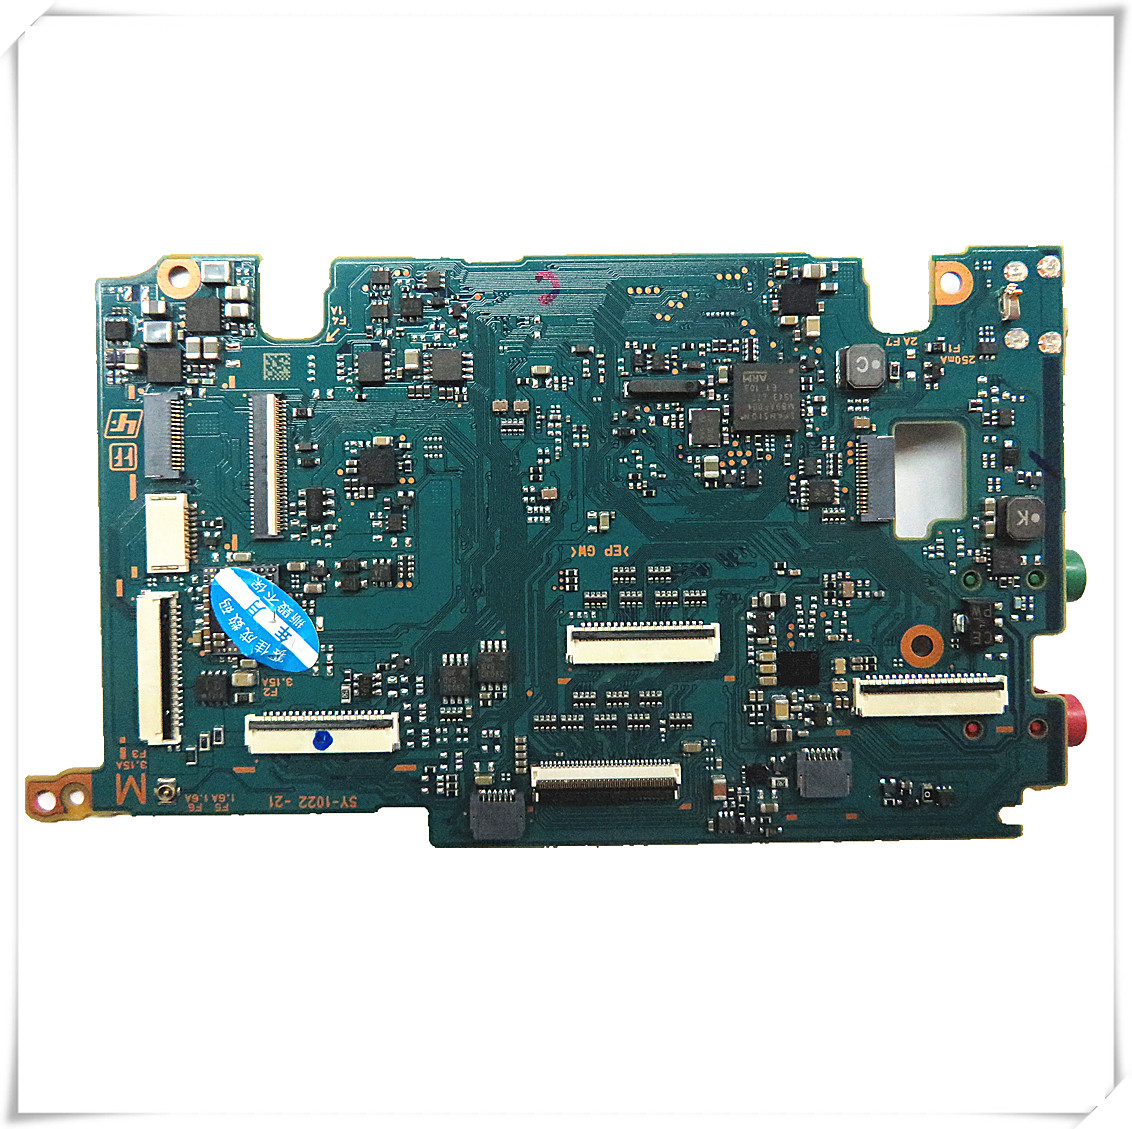 100% Original  A7 motherboard for SONY a7 mainboard a7 main board a7 camera Repair parts100% Original  A7 motherboard for SONY a7 mainboard a7 main board a7 camera Repair parts